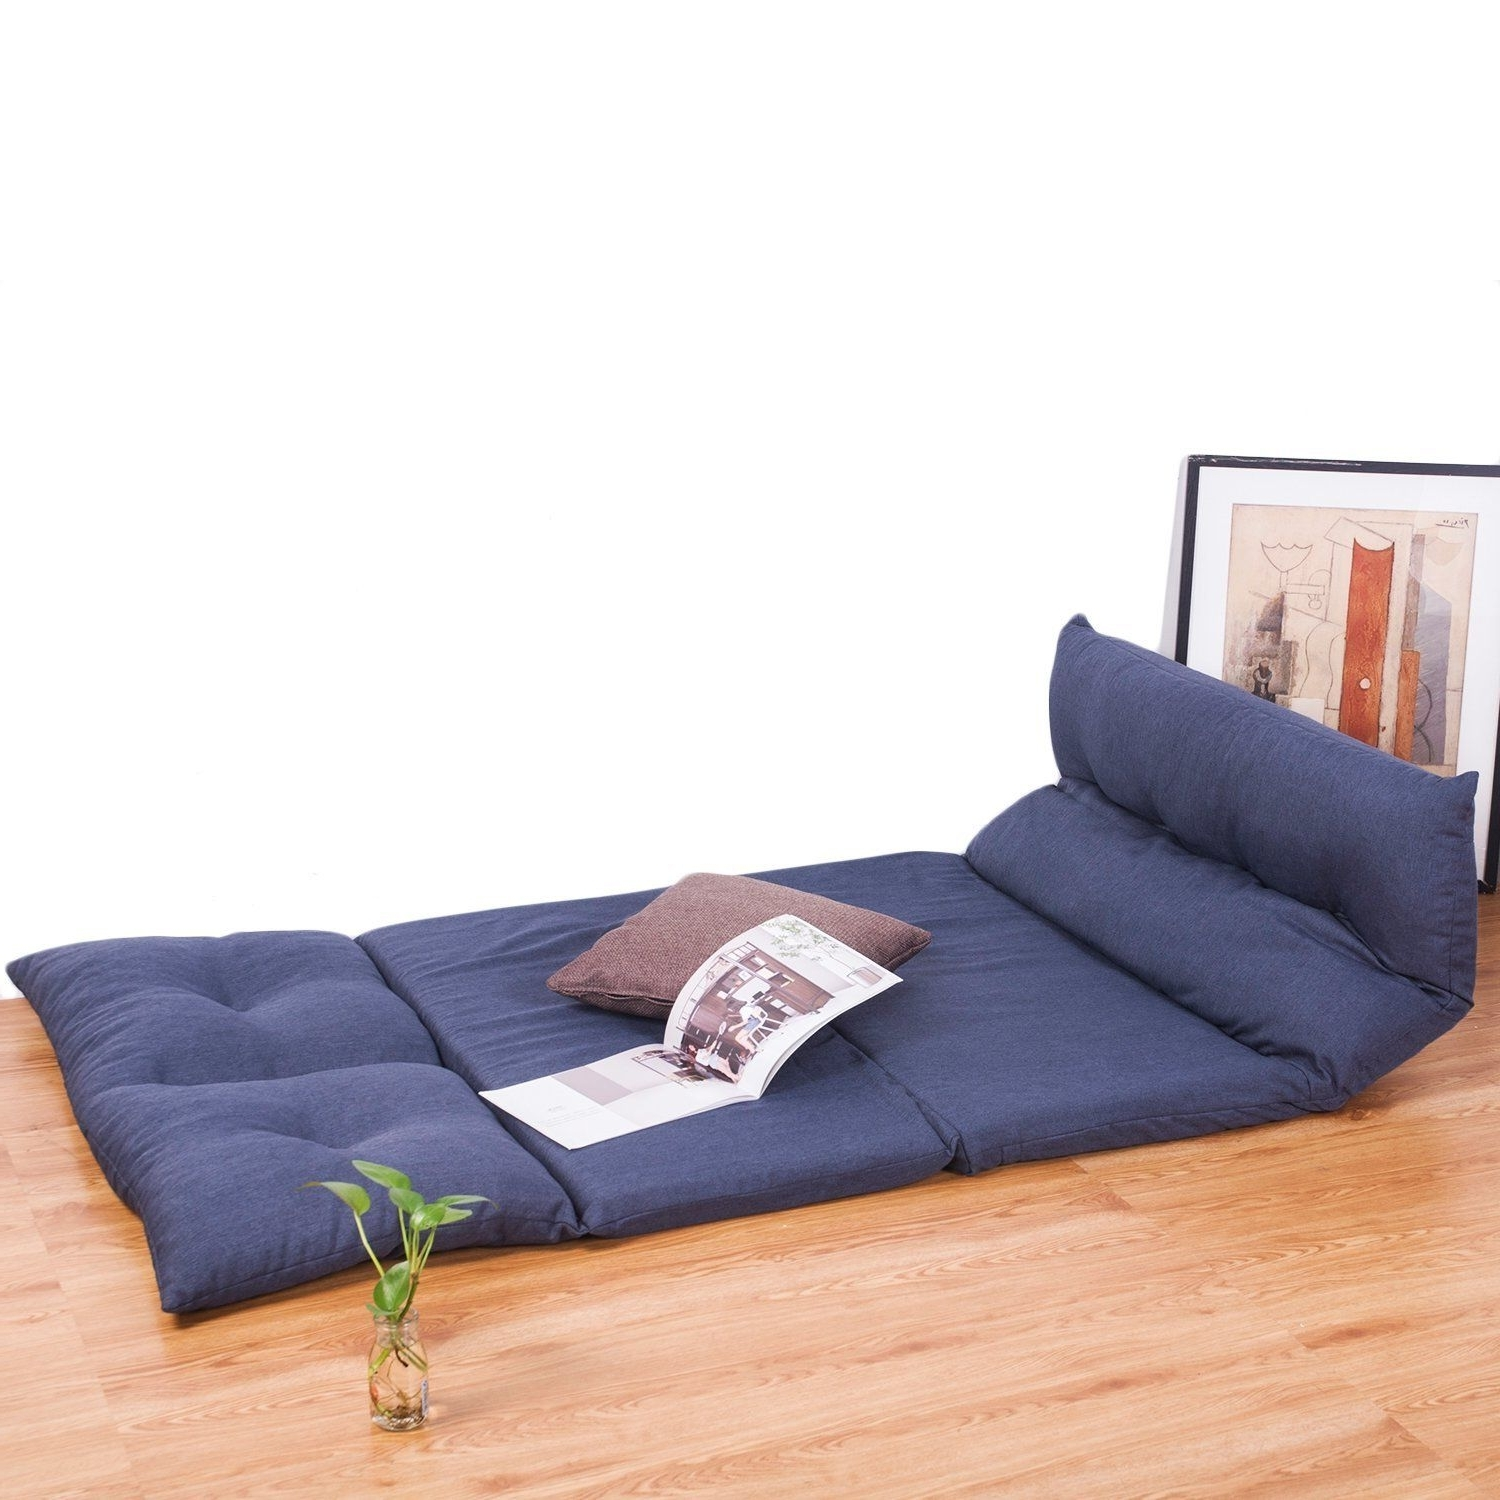 Folding Sofa Chairs Within Current Amazon: Merax Adjustable Fabric Folding Chaise Lounge Sofa (View 10 of 20)